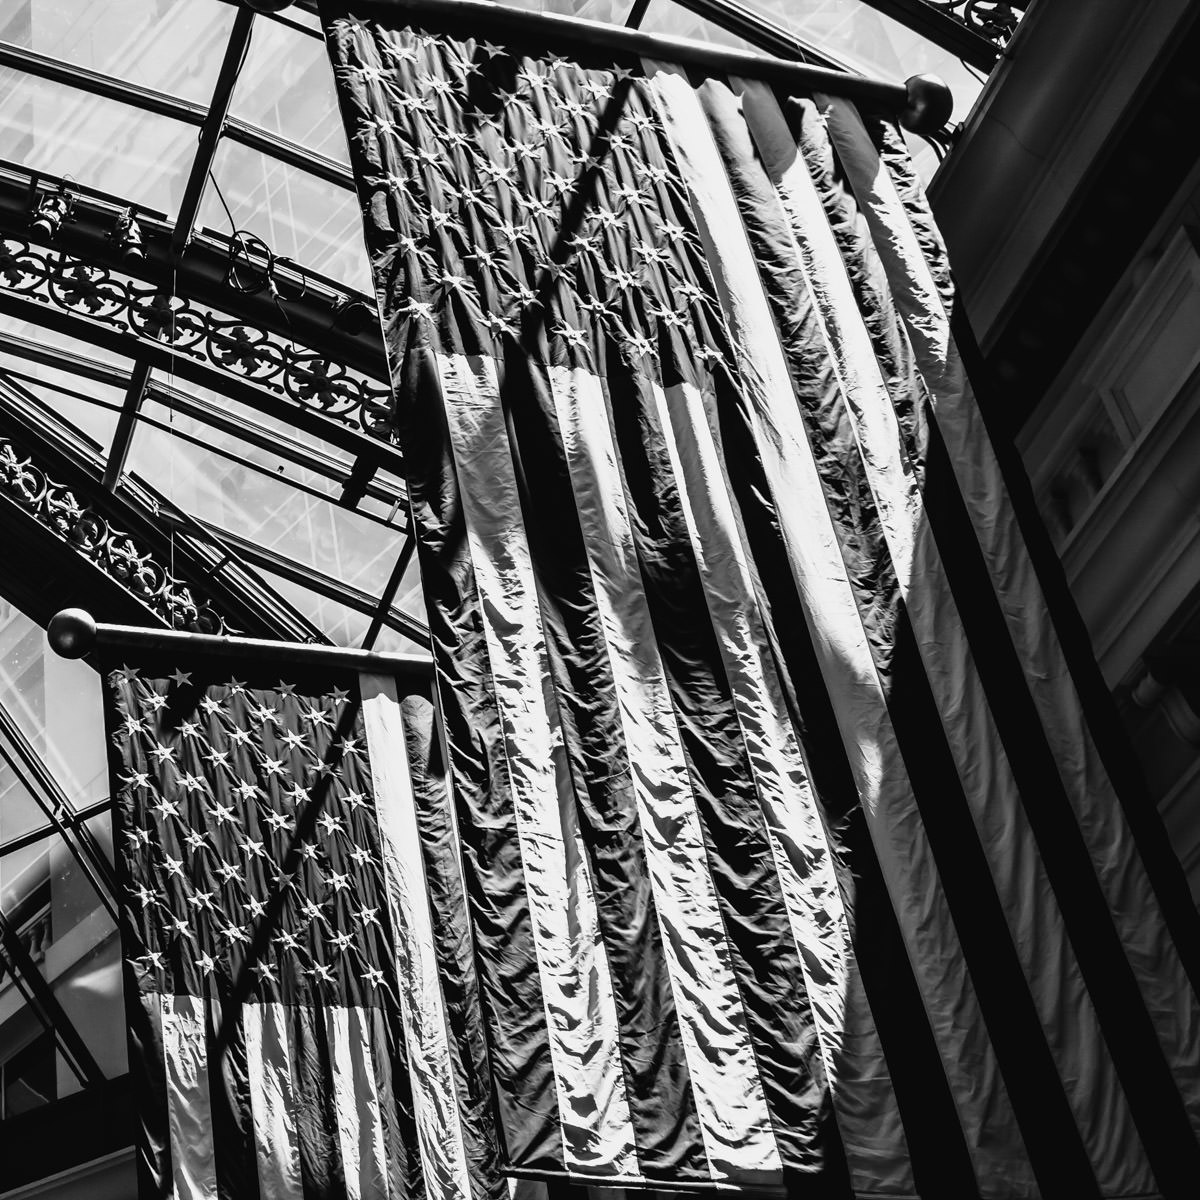 American flags hang inside the conservatory at the Bellagio, Las Vegas.